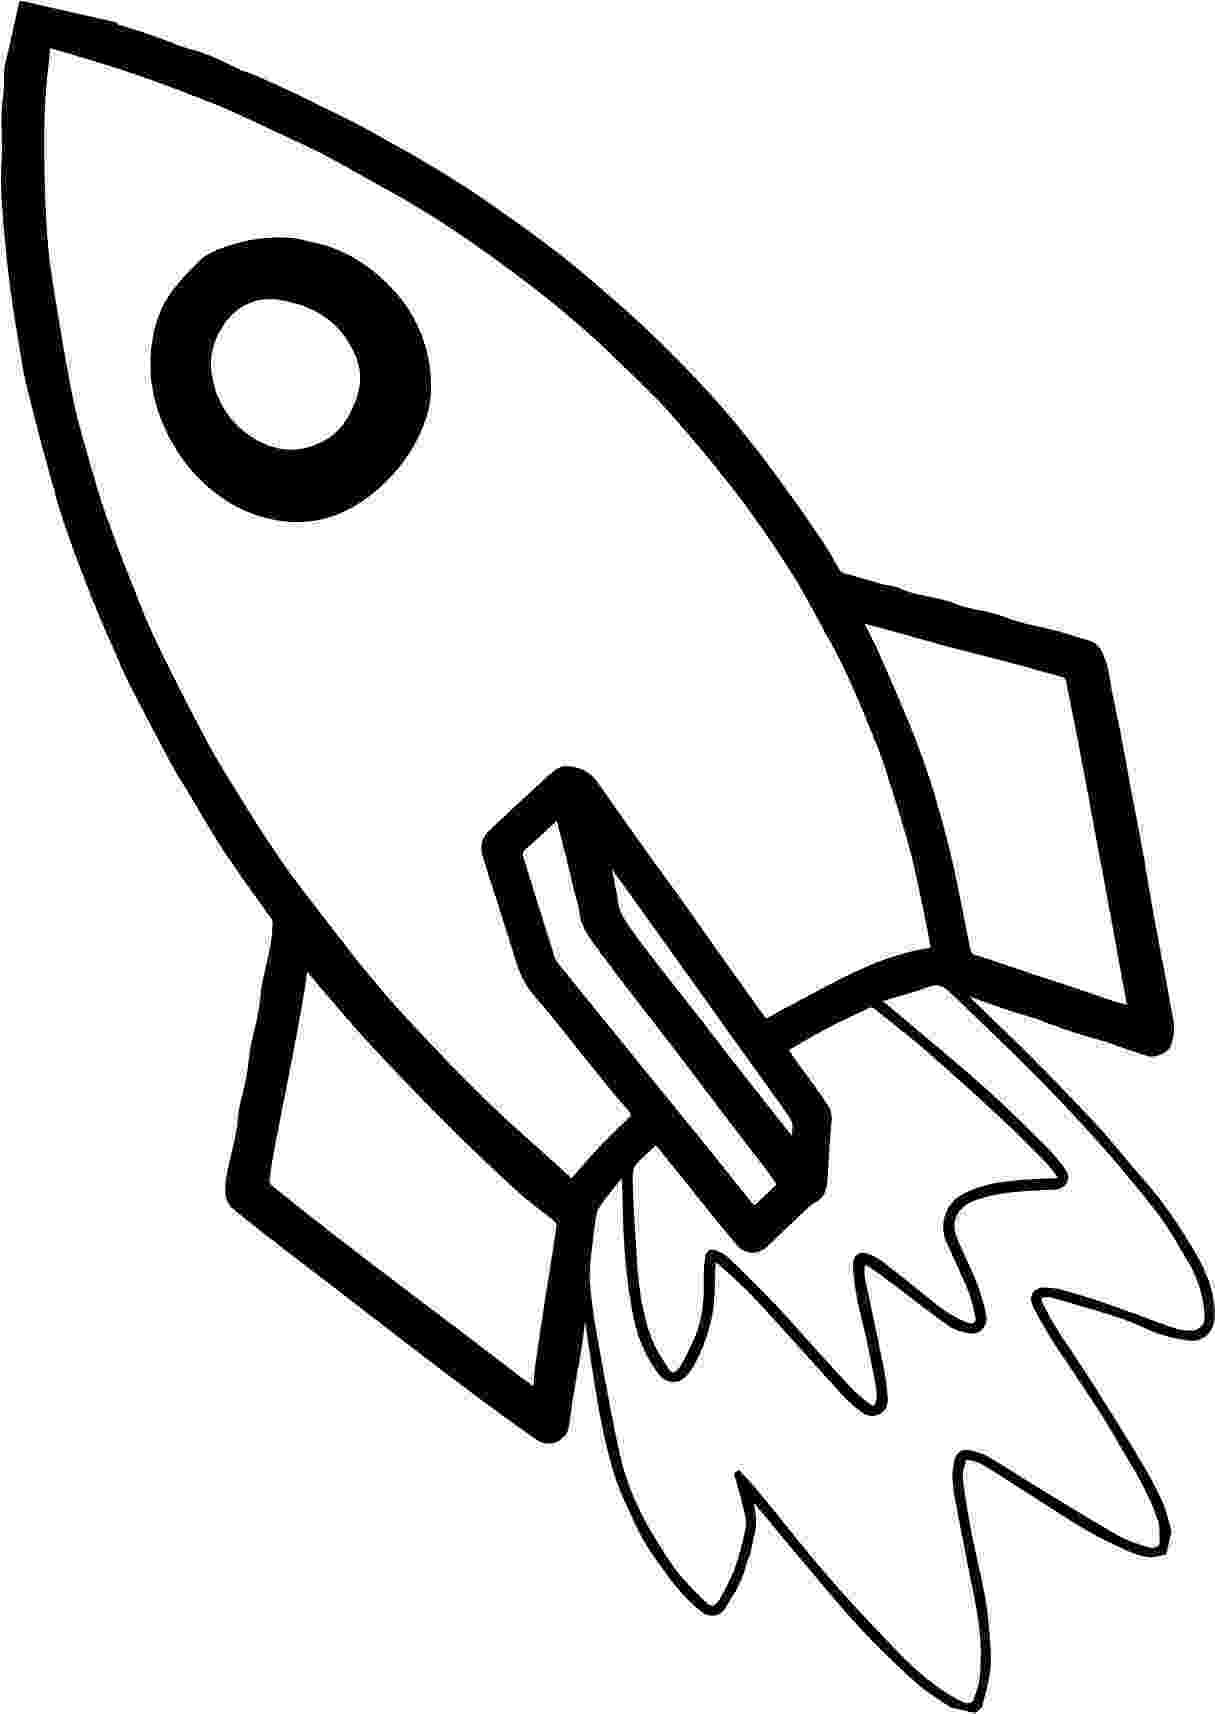 colouring sheet rocket adventurous expedition rocket to the moon colouring pages colouring sheet rocket